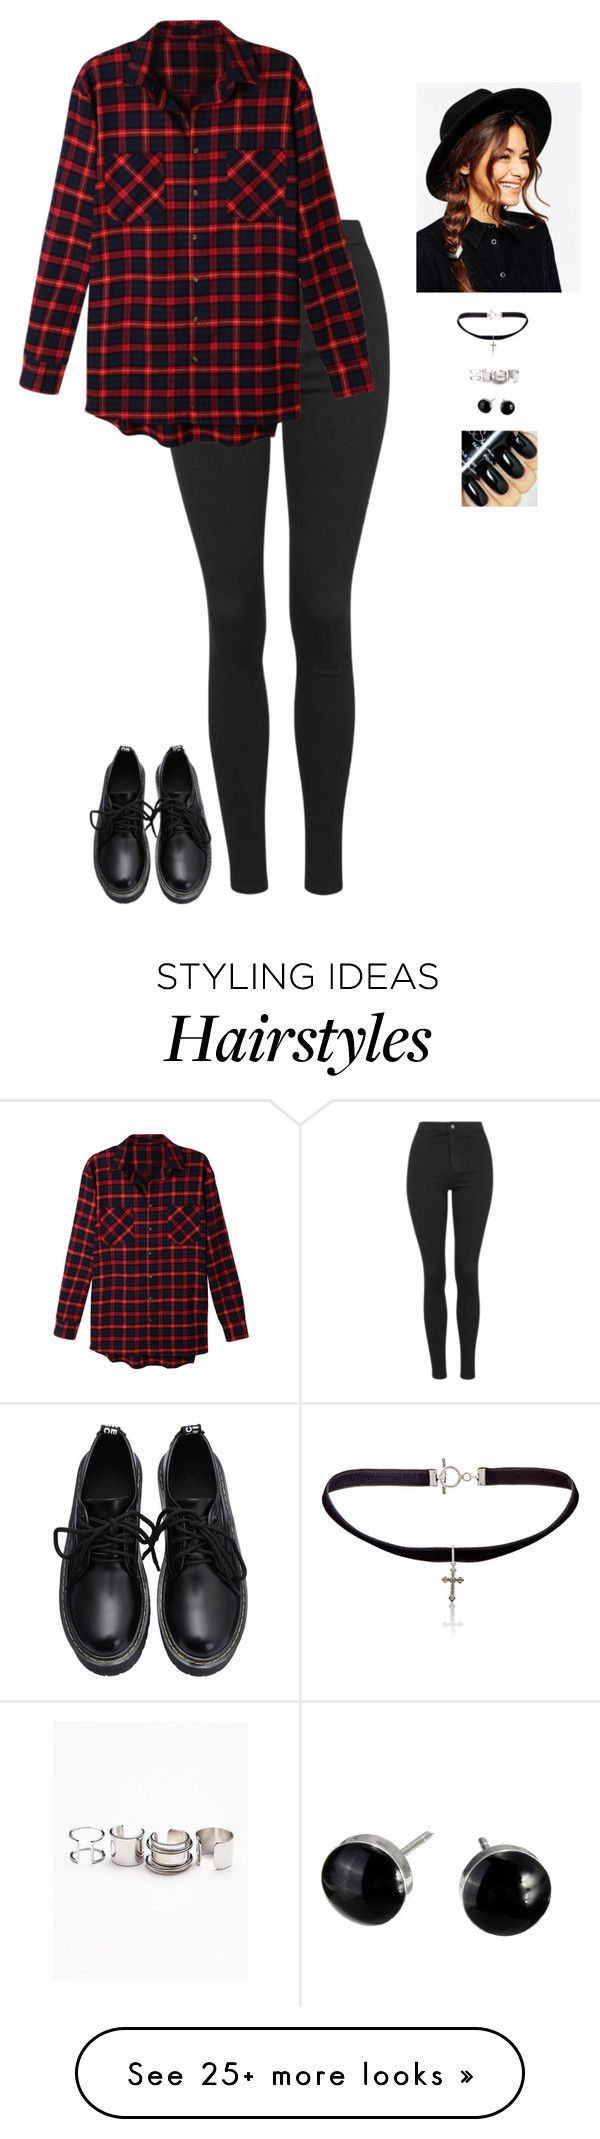 """""""Feminine Style With A Masculine Twist"""" by hanakdudley on Polyvore featuring Topshop, LE3NO, ASOS, Yves Saint Laurent, Free People, women's clothing, women, female, woman and misses"""